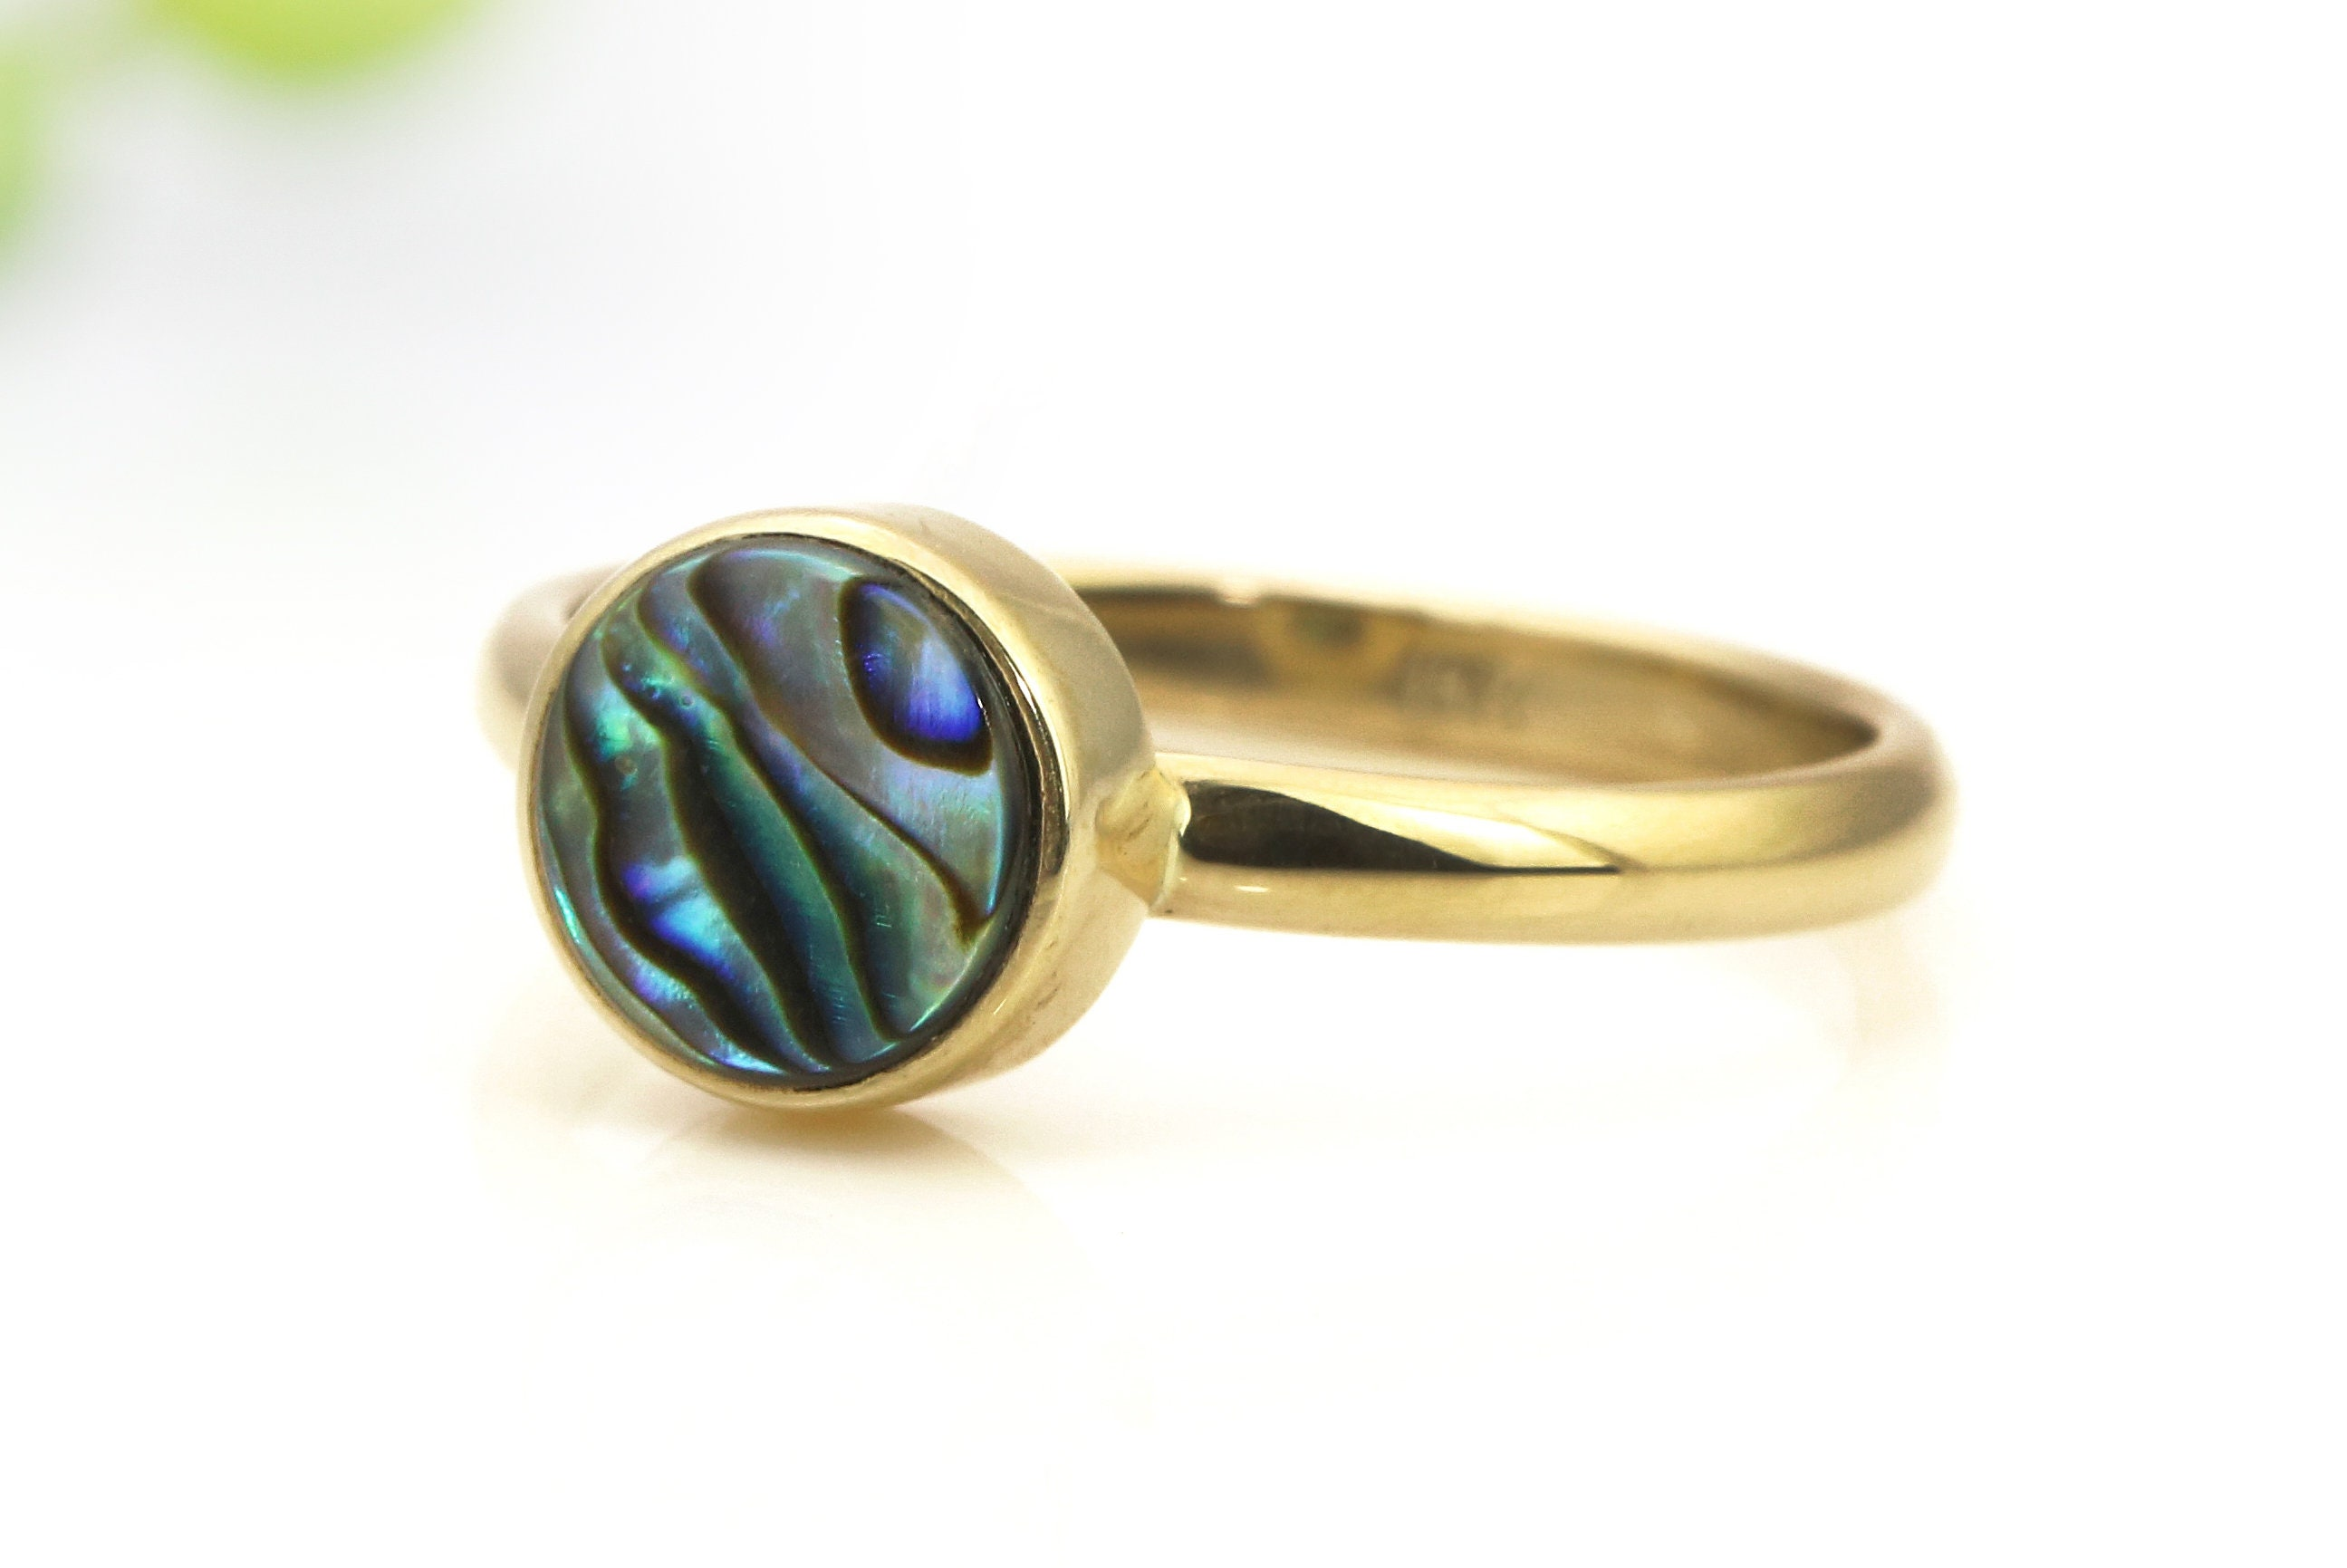 wood fullxfull rings abalone black il bent zoom listing ring wedding walnut